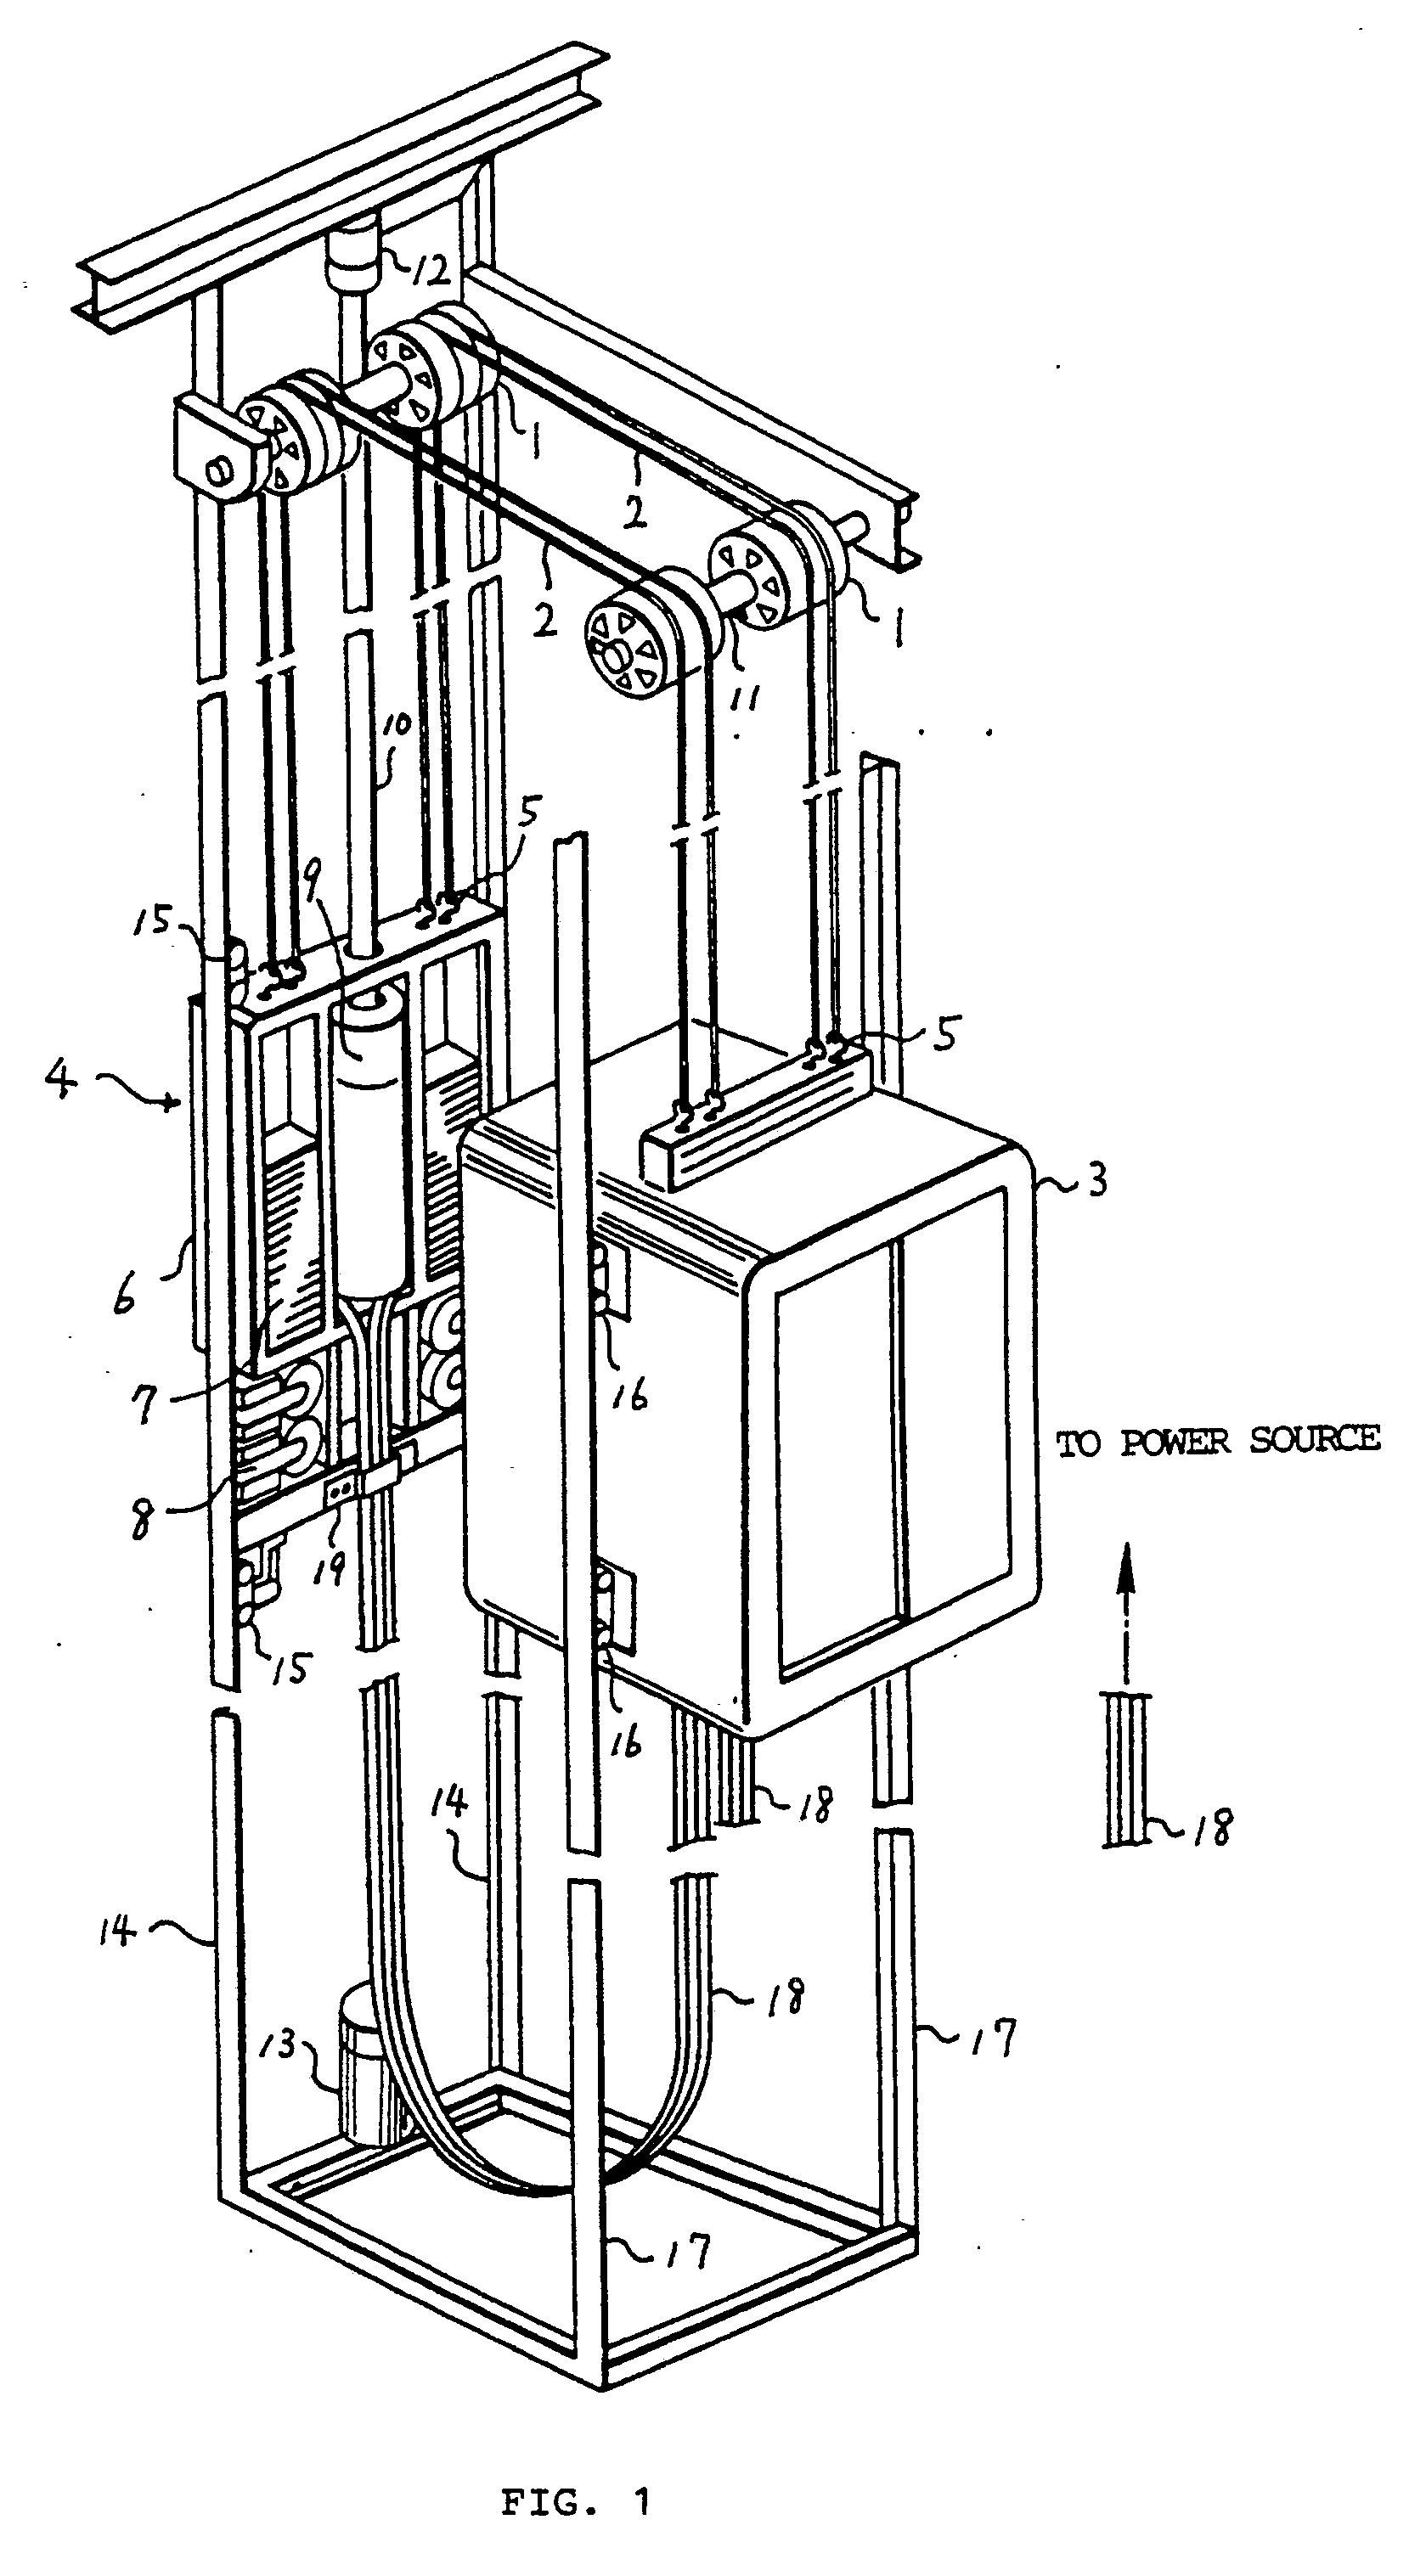 Otis Elevator Schematic Diagram Within Diagram Wiring And